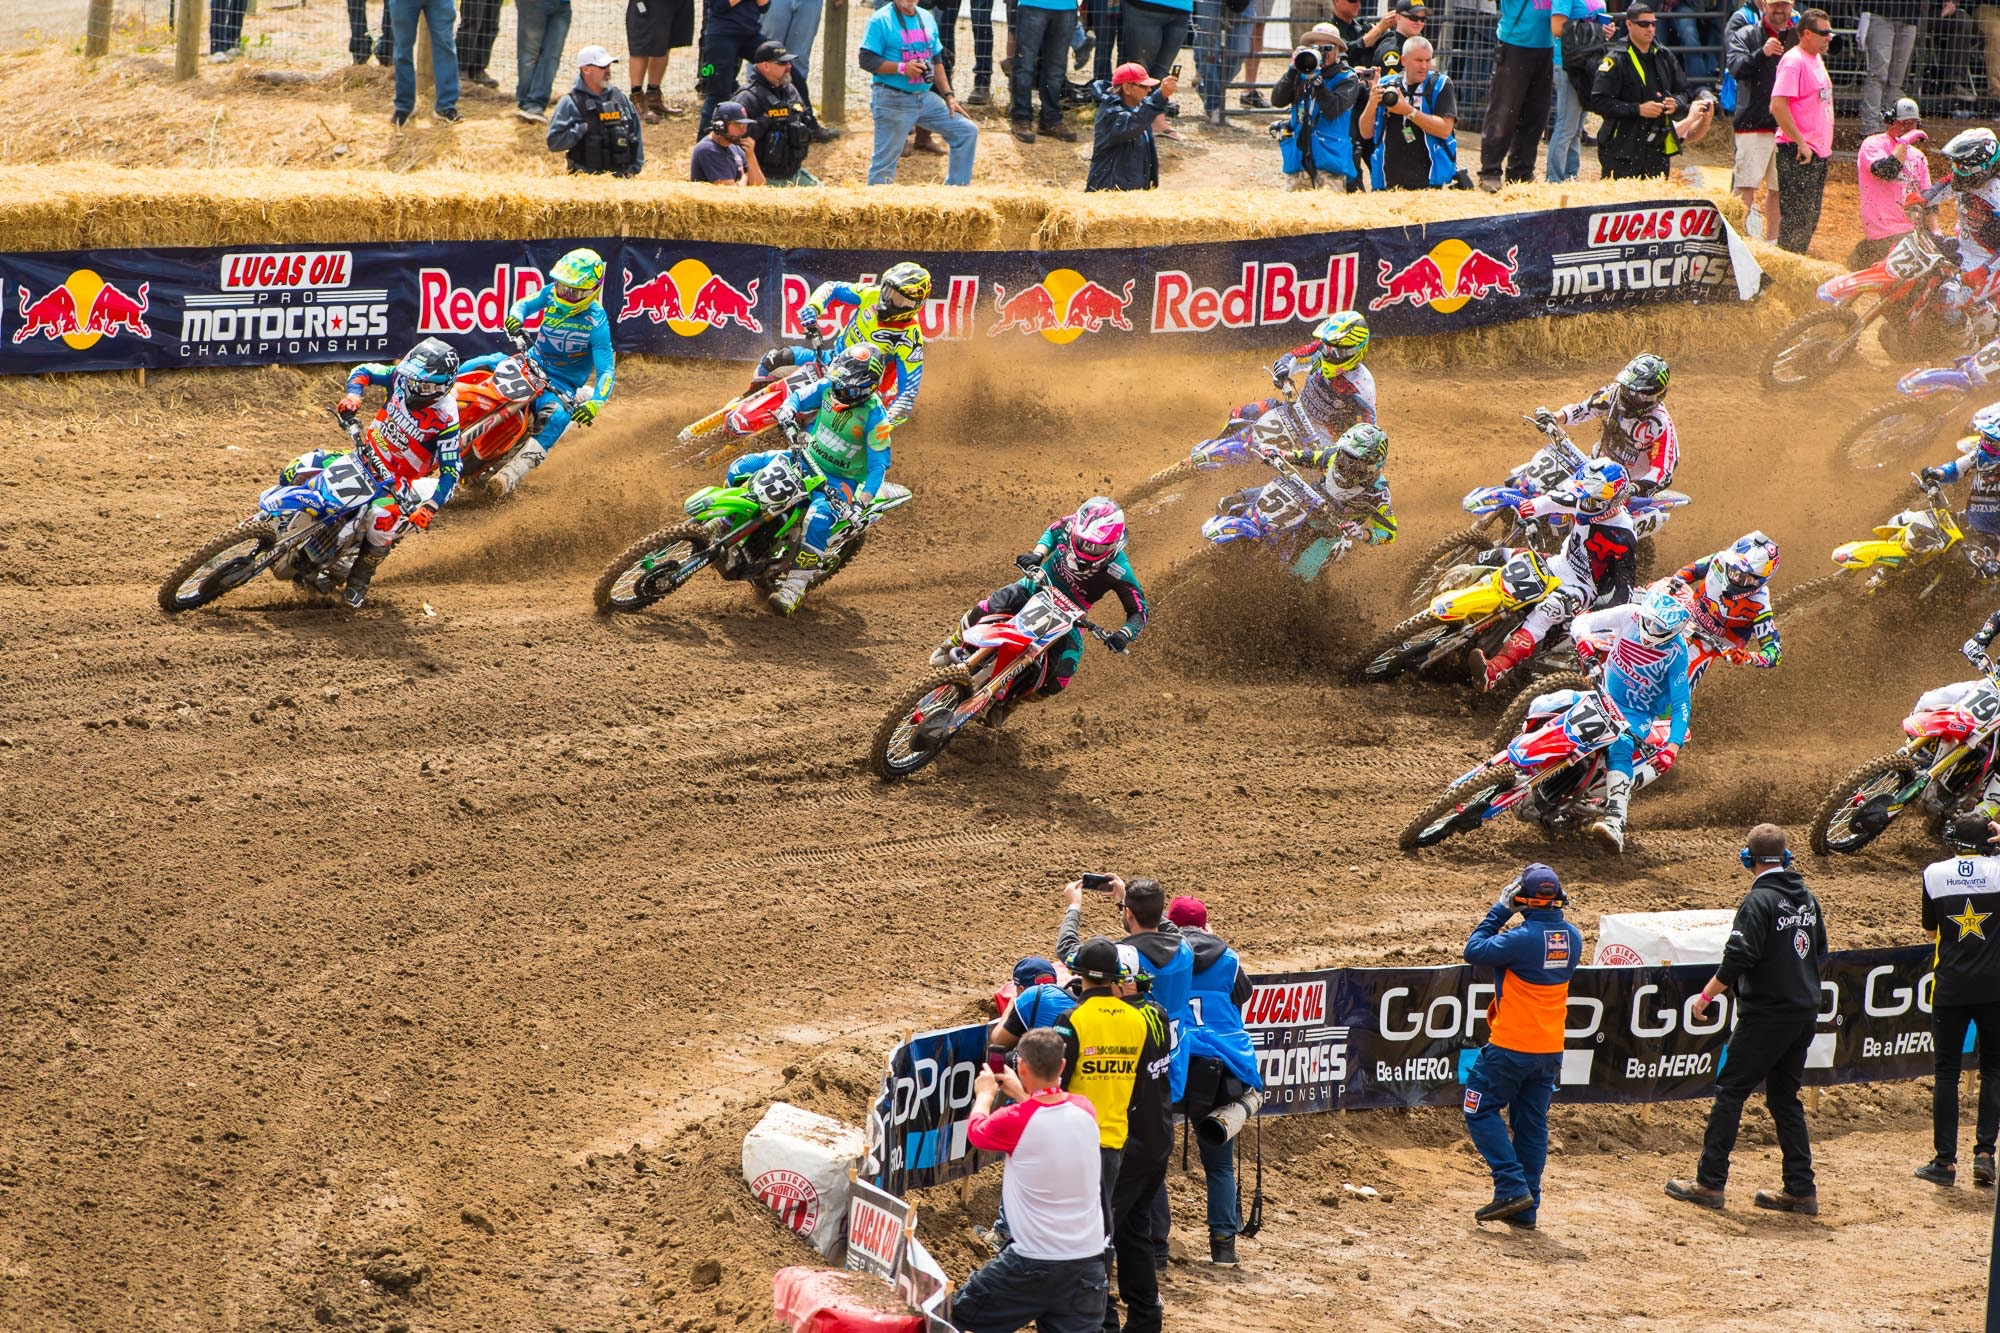 Cole Seely edged Trey Canard for the holeshot by mere inches.